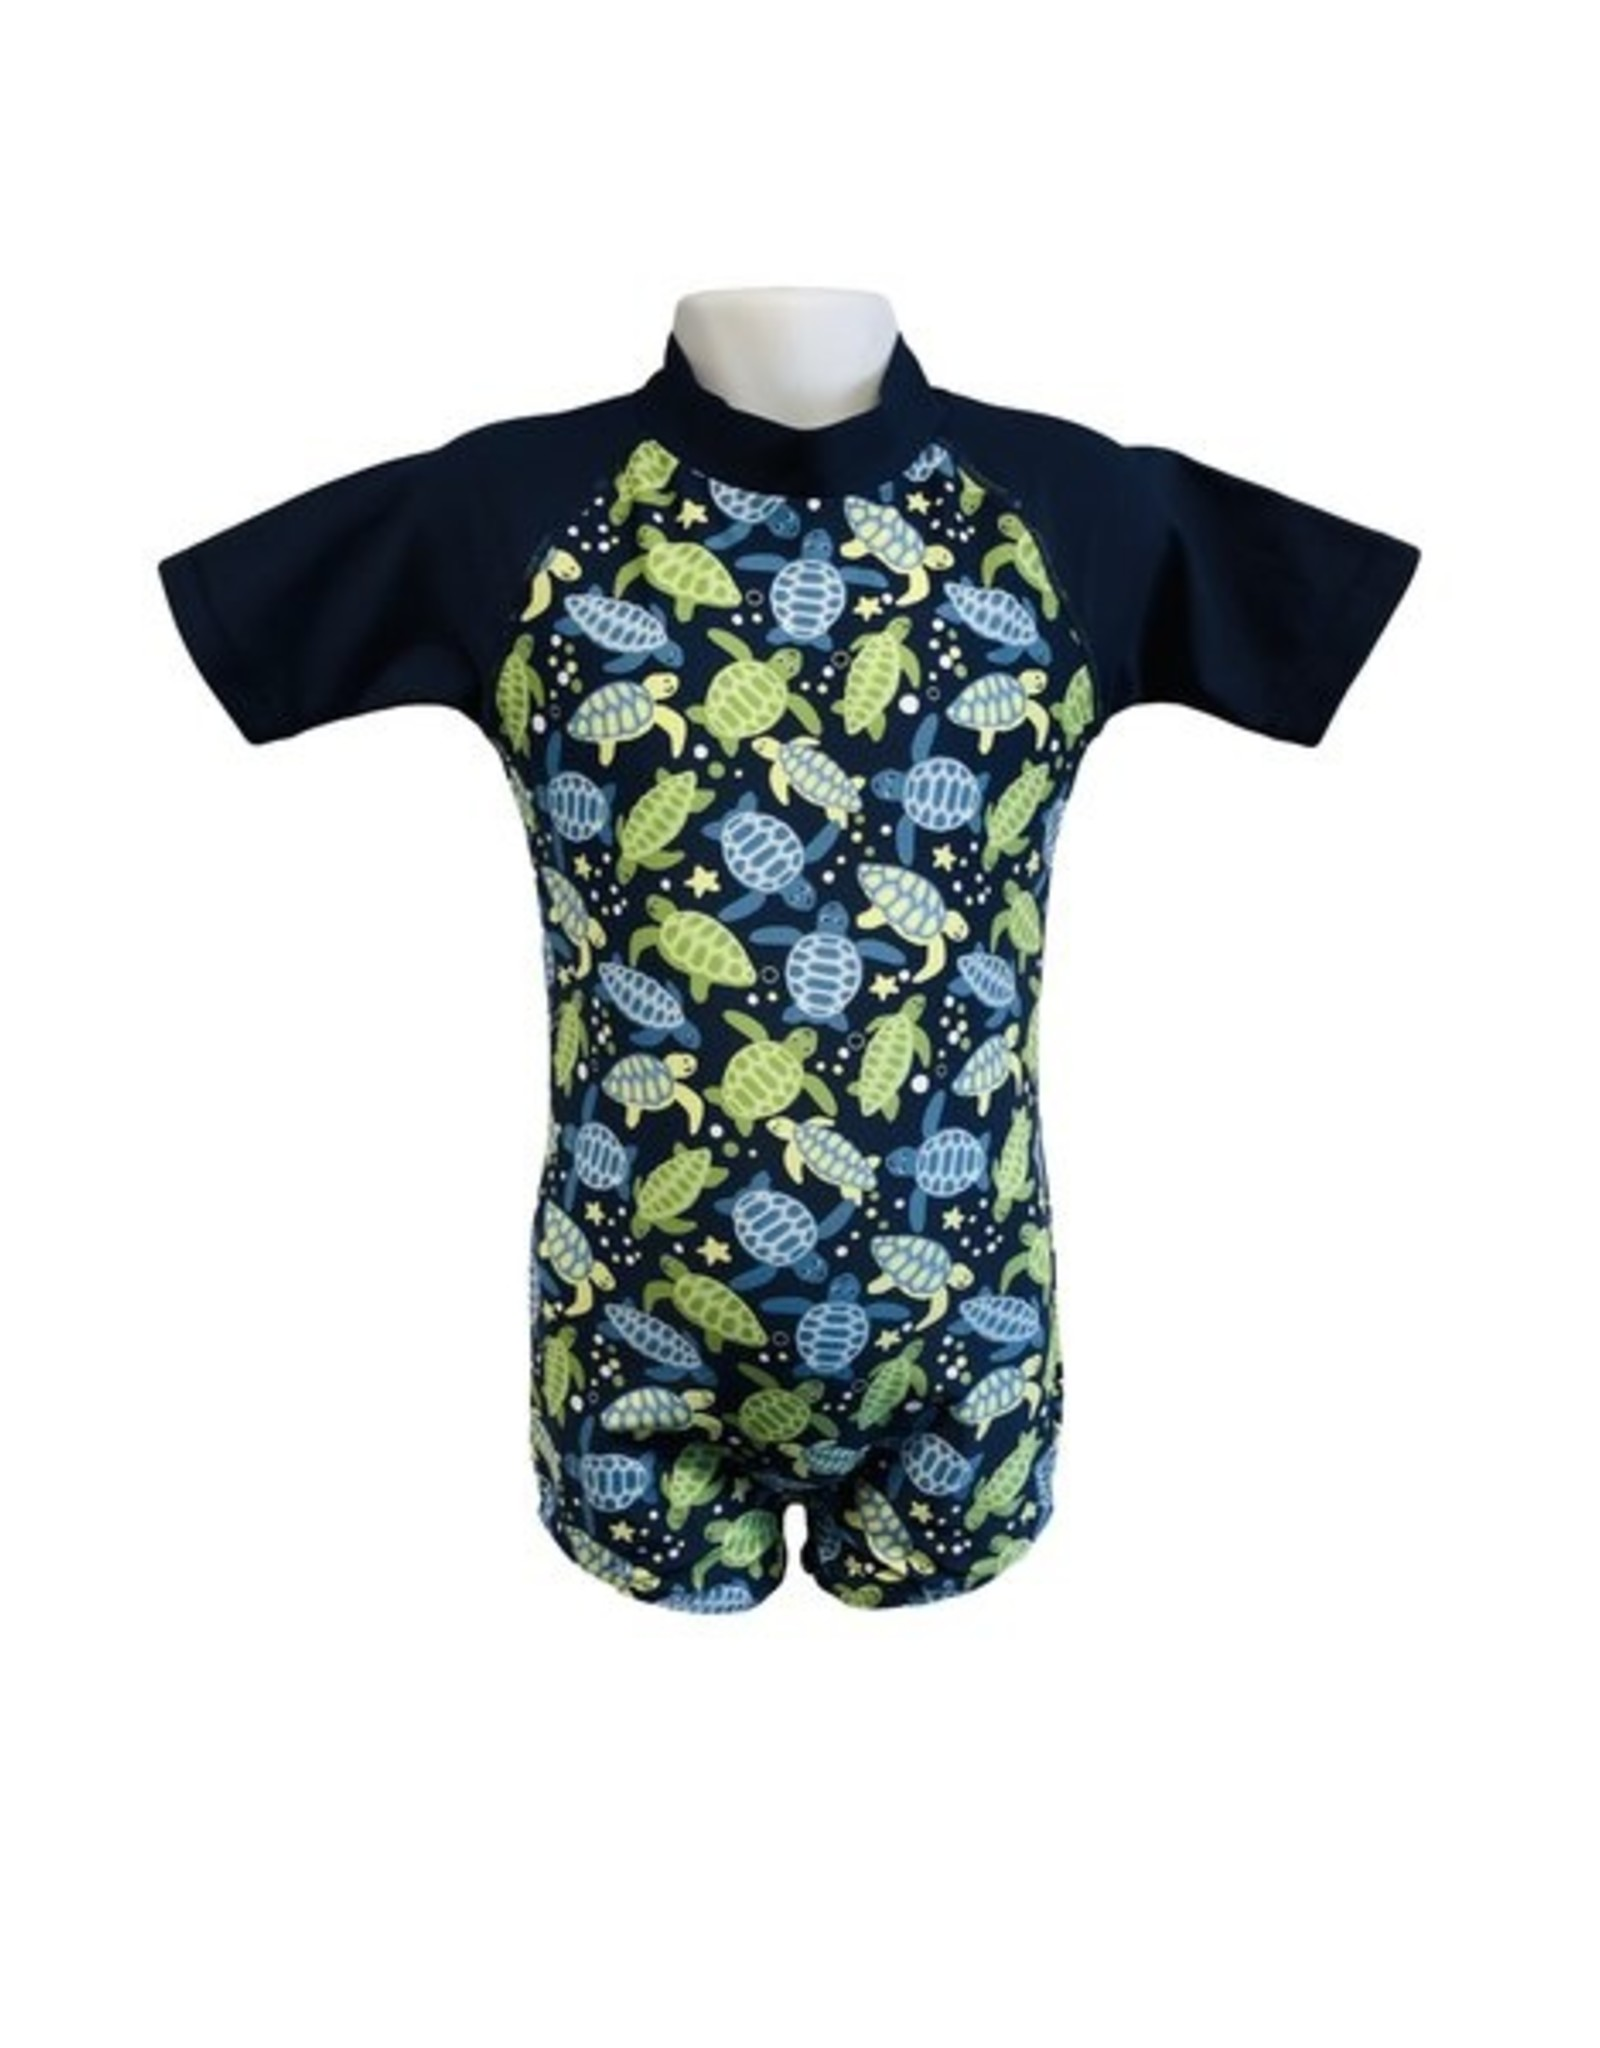 Banz Turtle Swimsuit